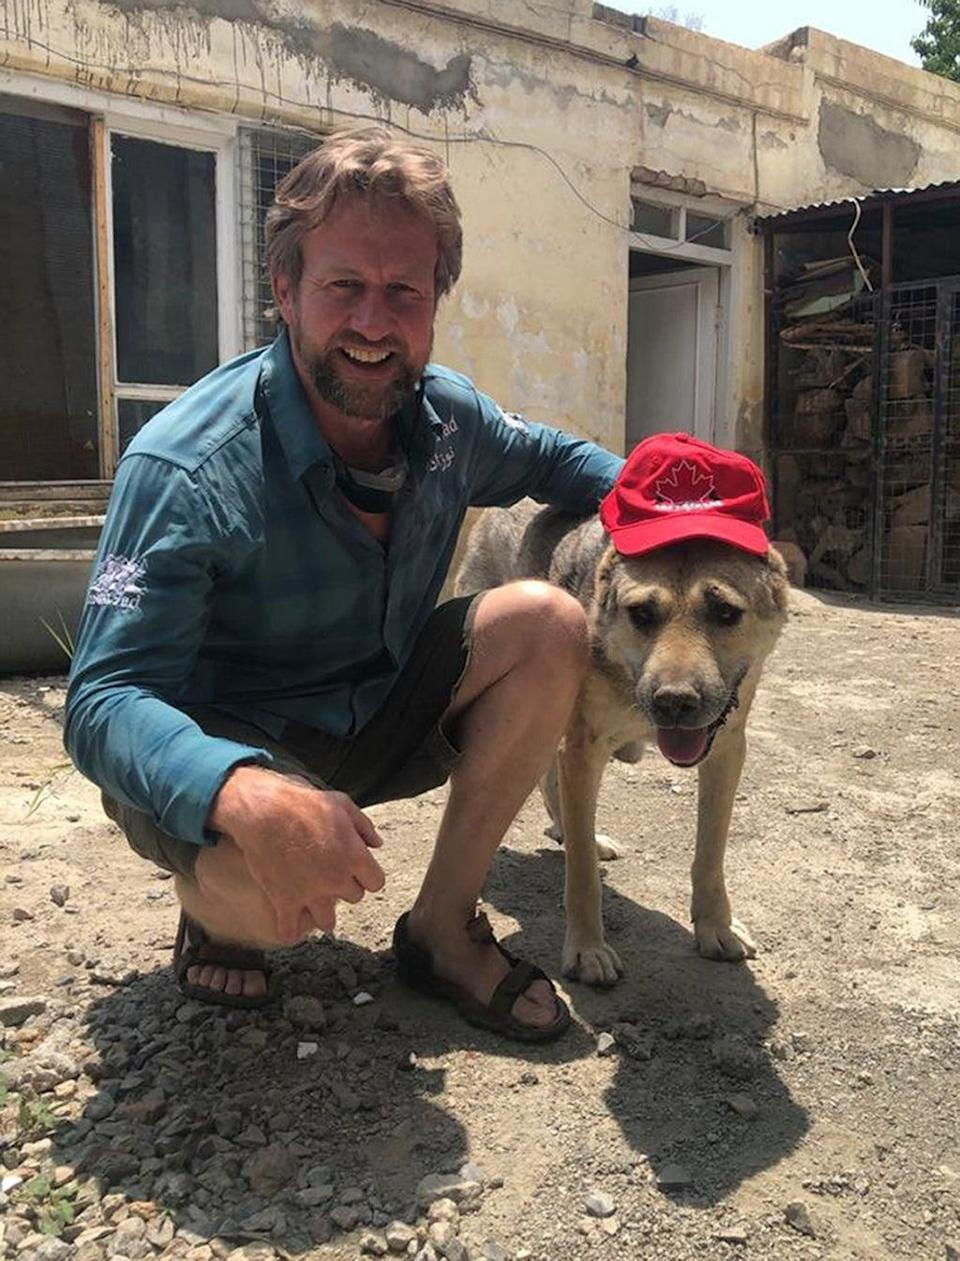 Pen Farthing, founder of animal rescue charity Nowzad (Nowzad) (PA Media)